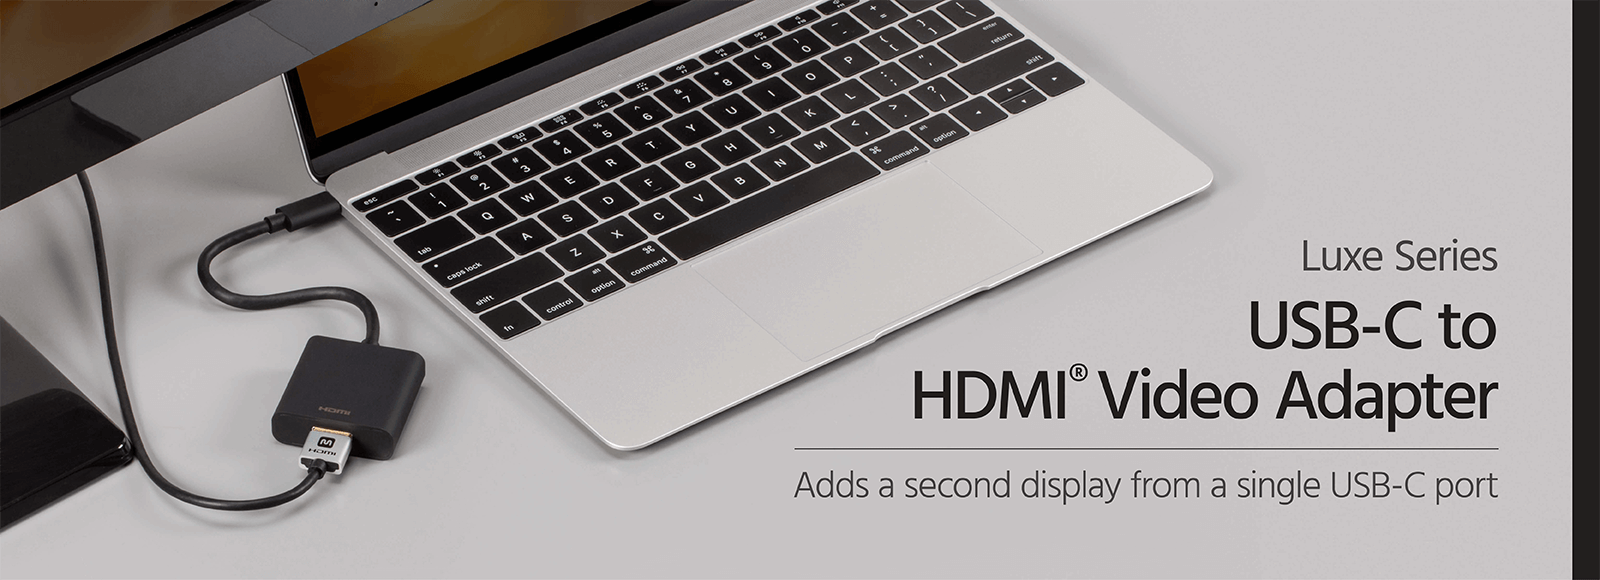 USB-C to HDMI Video Adapter